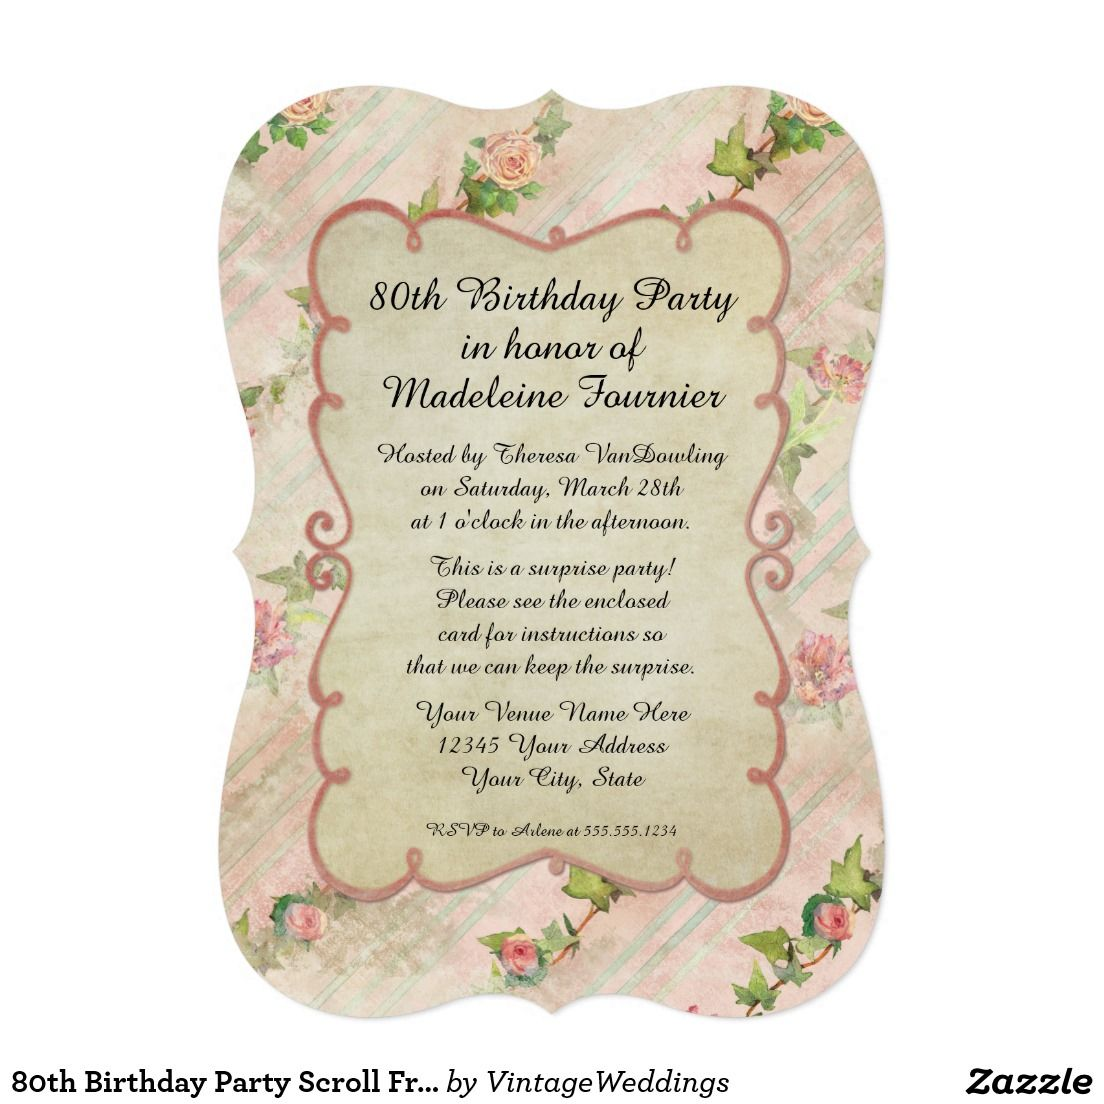 80th Birthday Party Scroll Frame w Vintage Roses Card